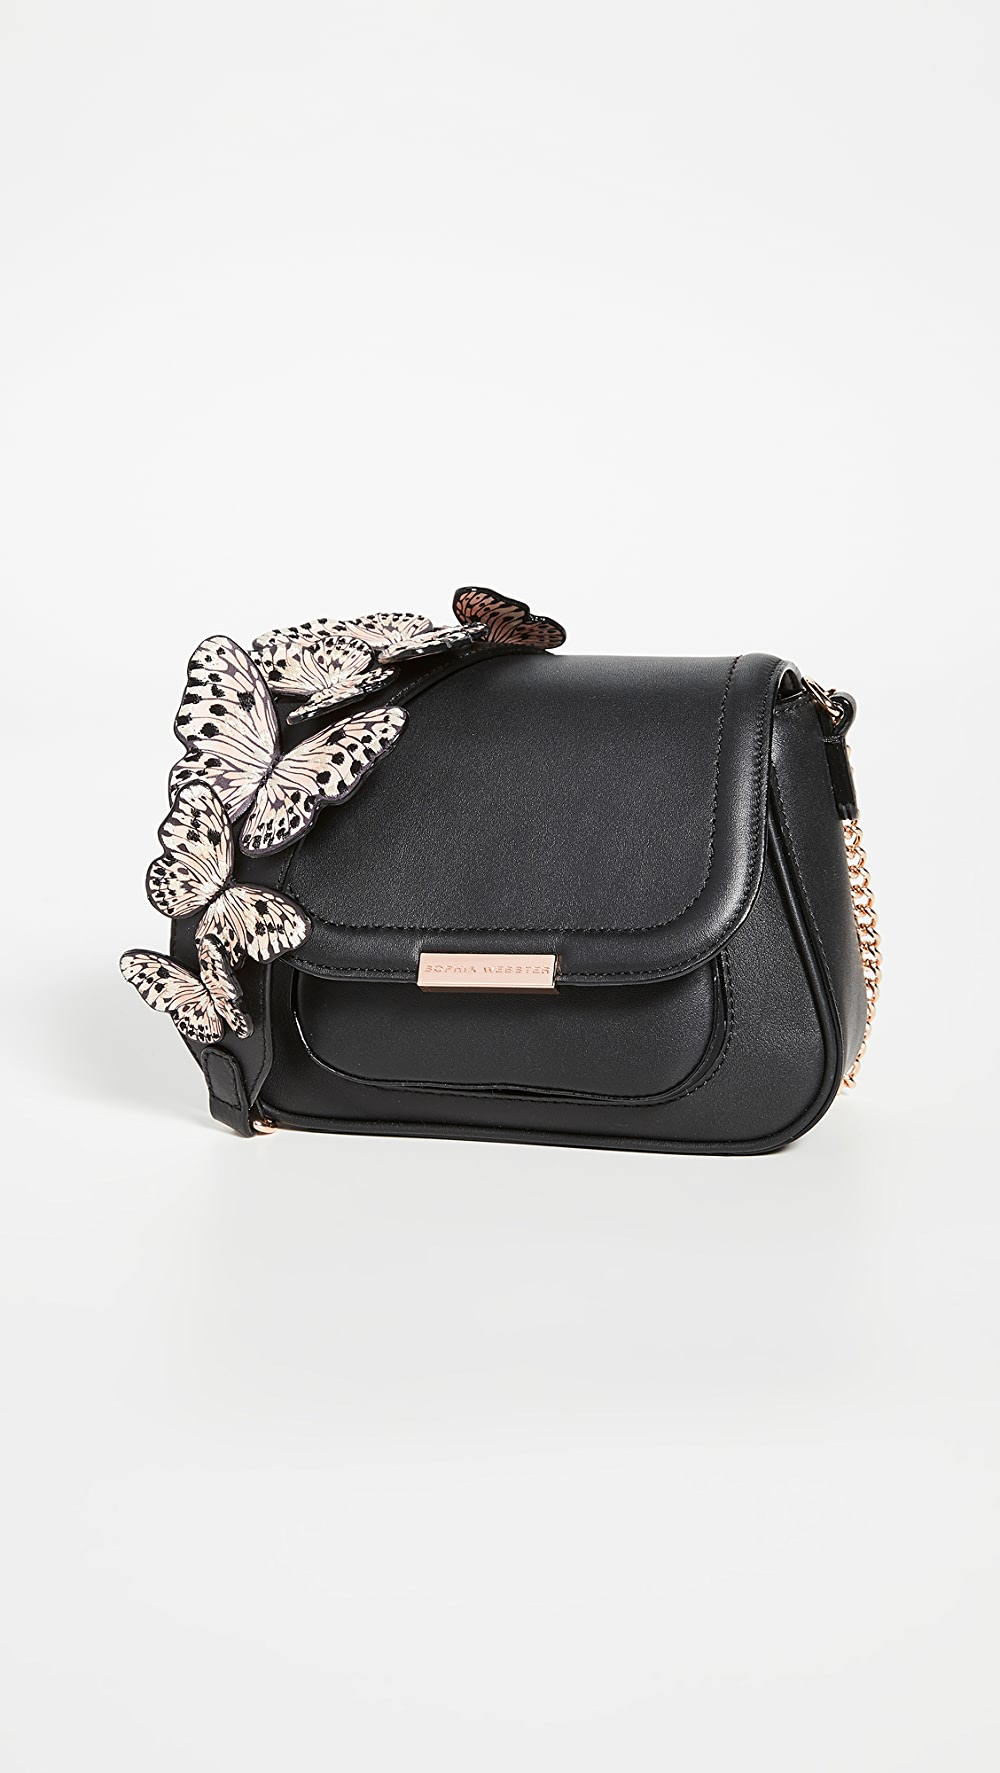 Capable Sophia Webster - Mini Eloise Butterfly Shoulder Bag Cool In Summer And Warm In Winter